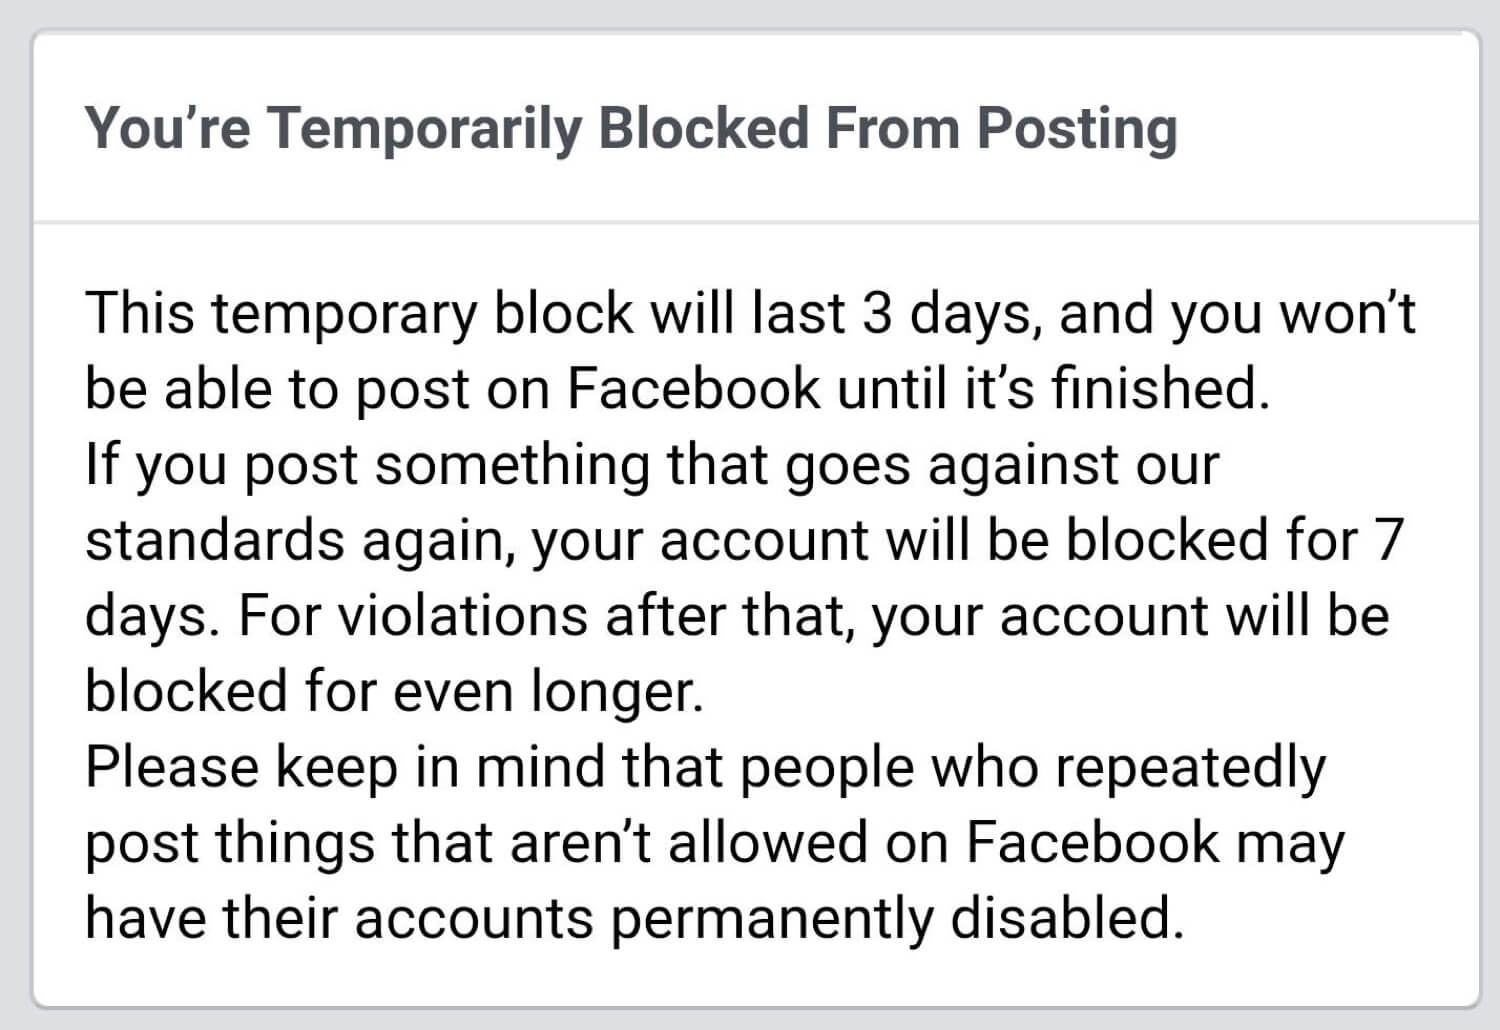 James Hunter's post that was taken down for supposedly violating Facebook's community standards.